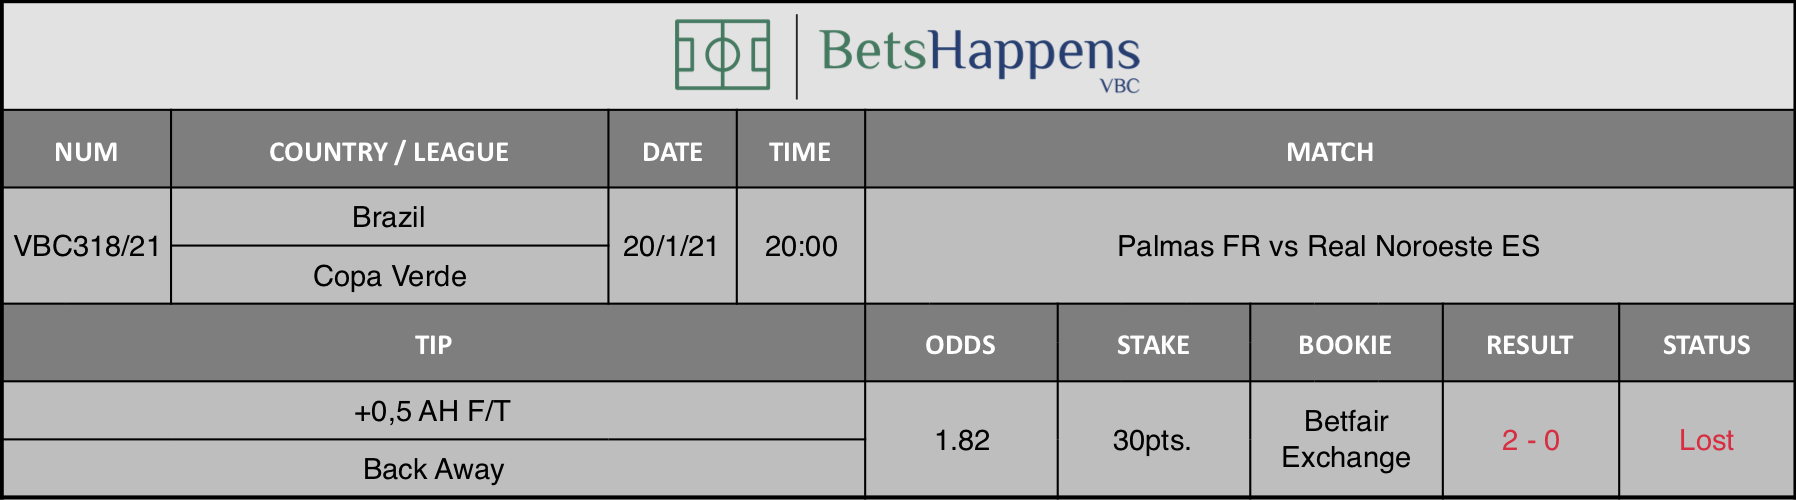 Results of our tip for the Palmas FR vs Real Noroeste ES match where +0,5 AH F/T Back Away is recommended.